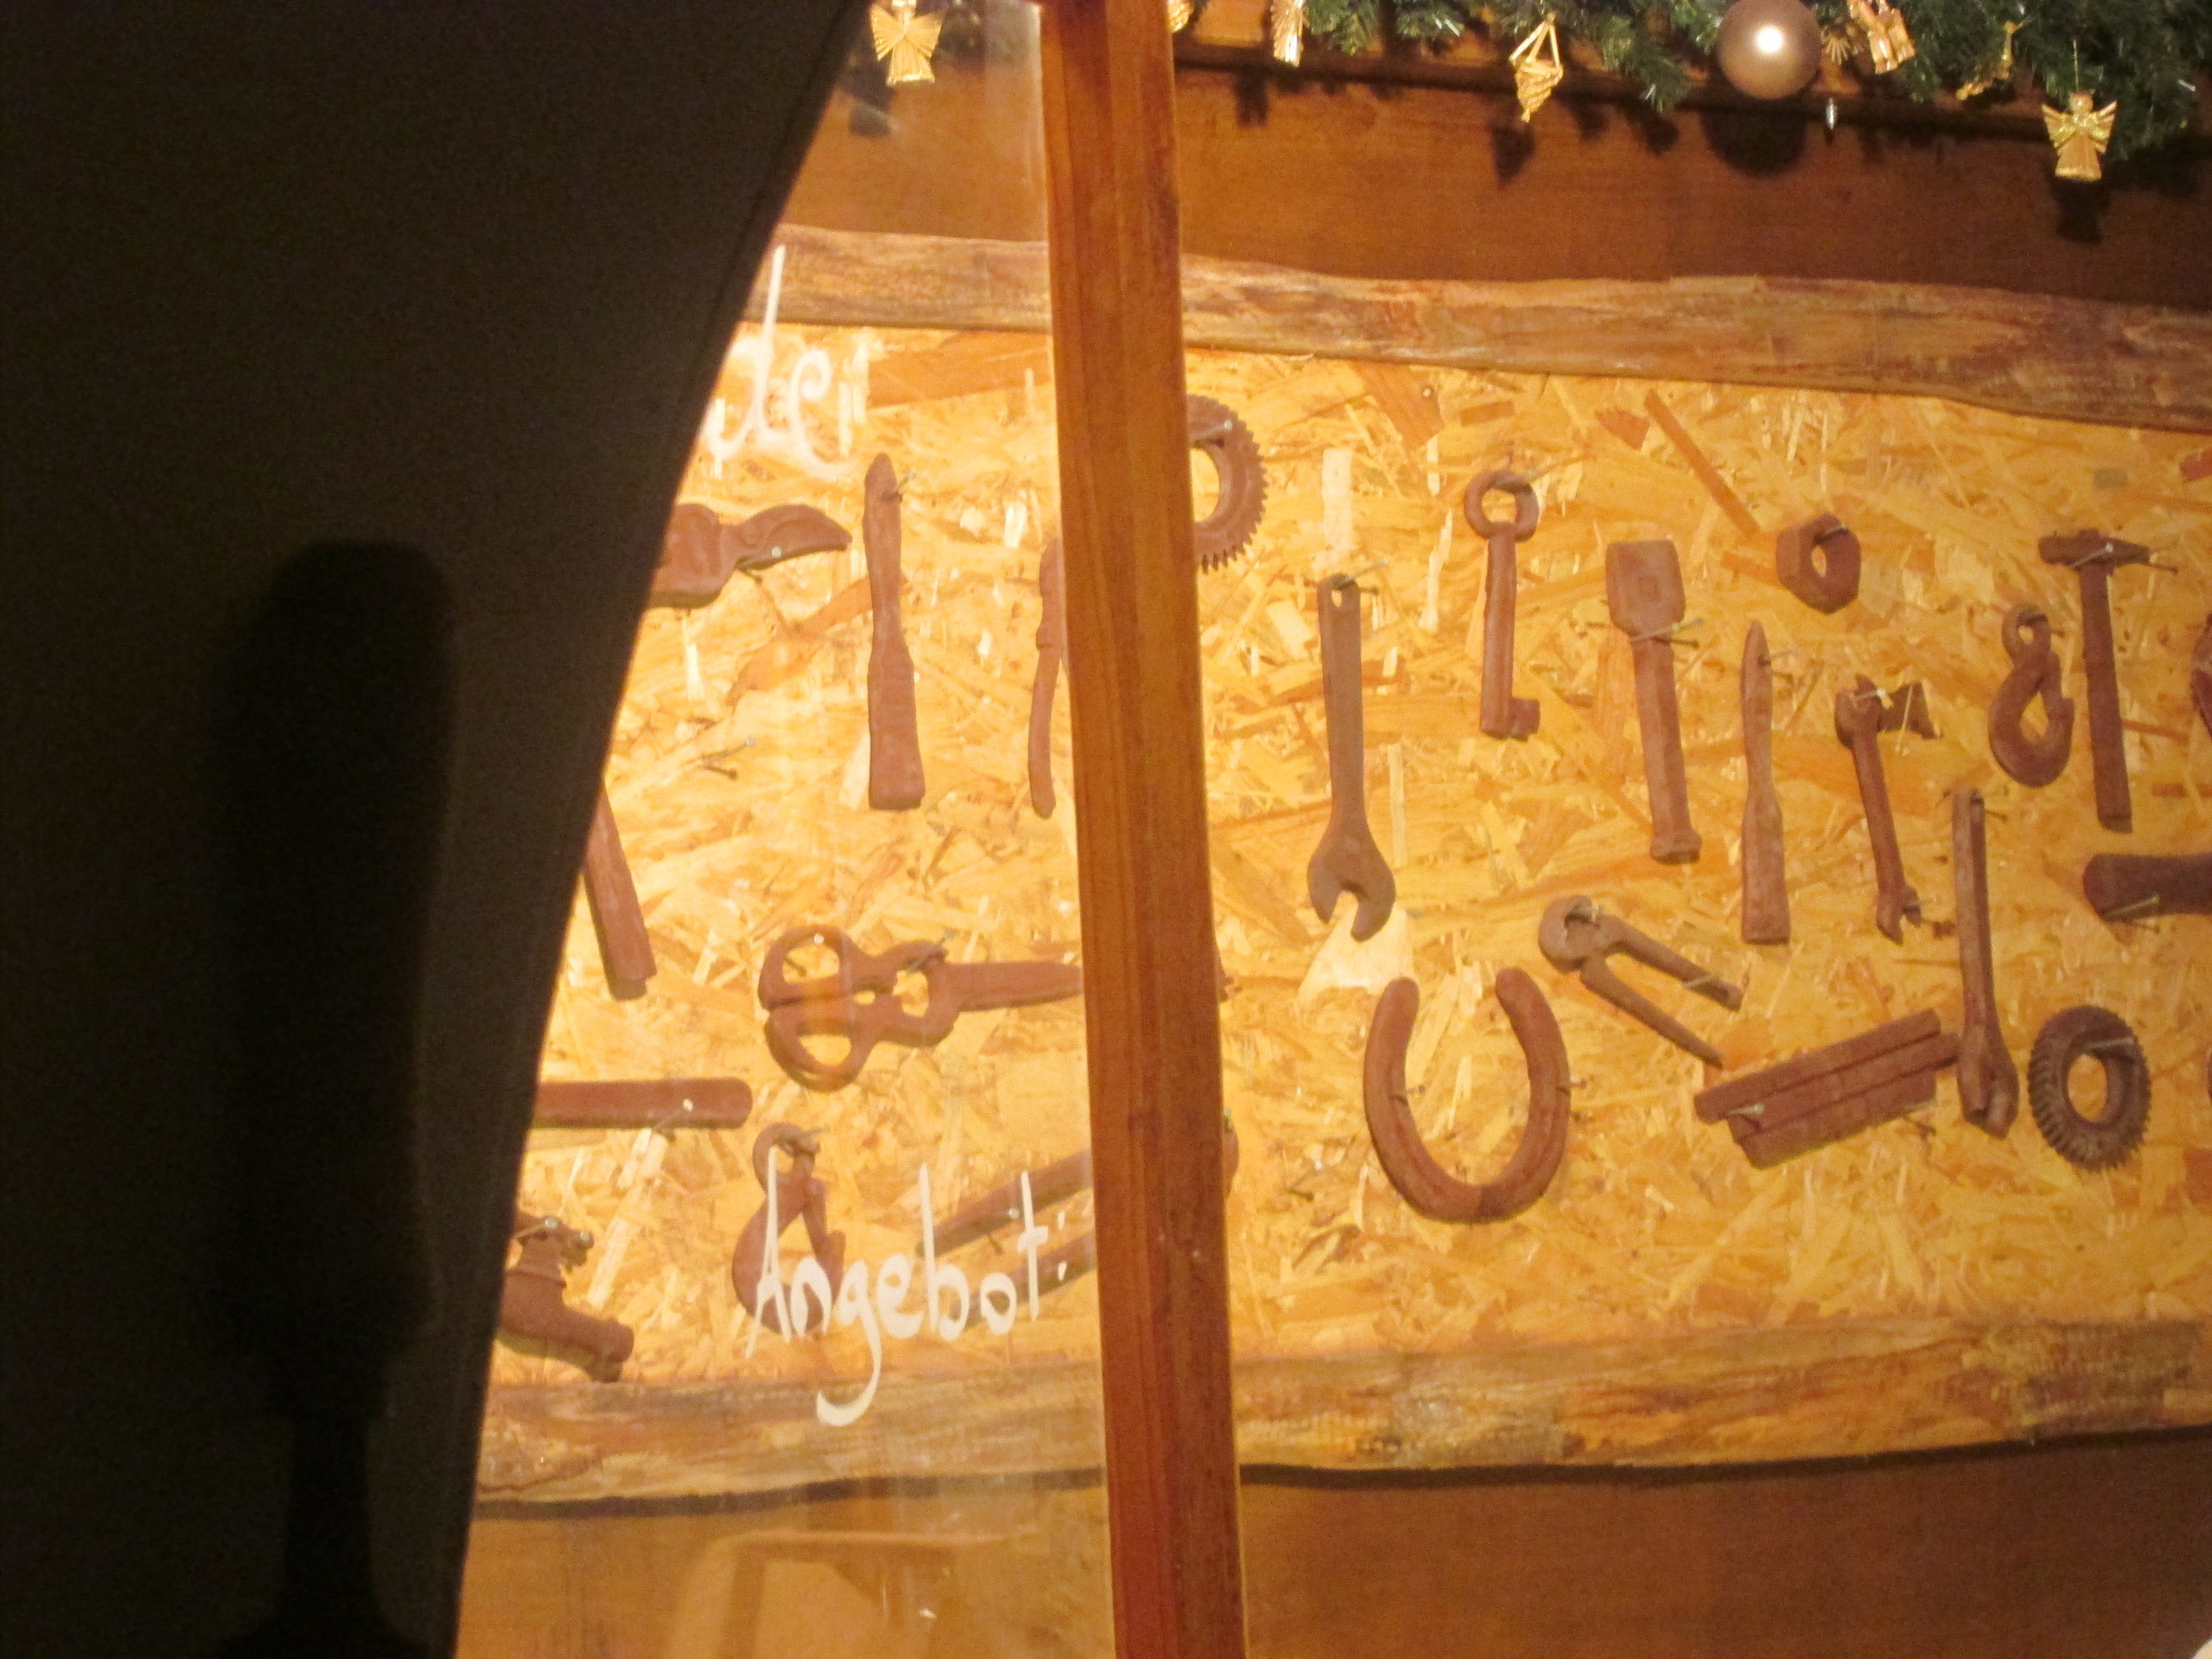 Chocolates in the shape of various hardware on display at a stand in the Neumarkt Weihnachtsmarkt